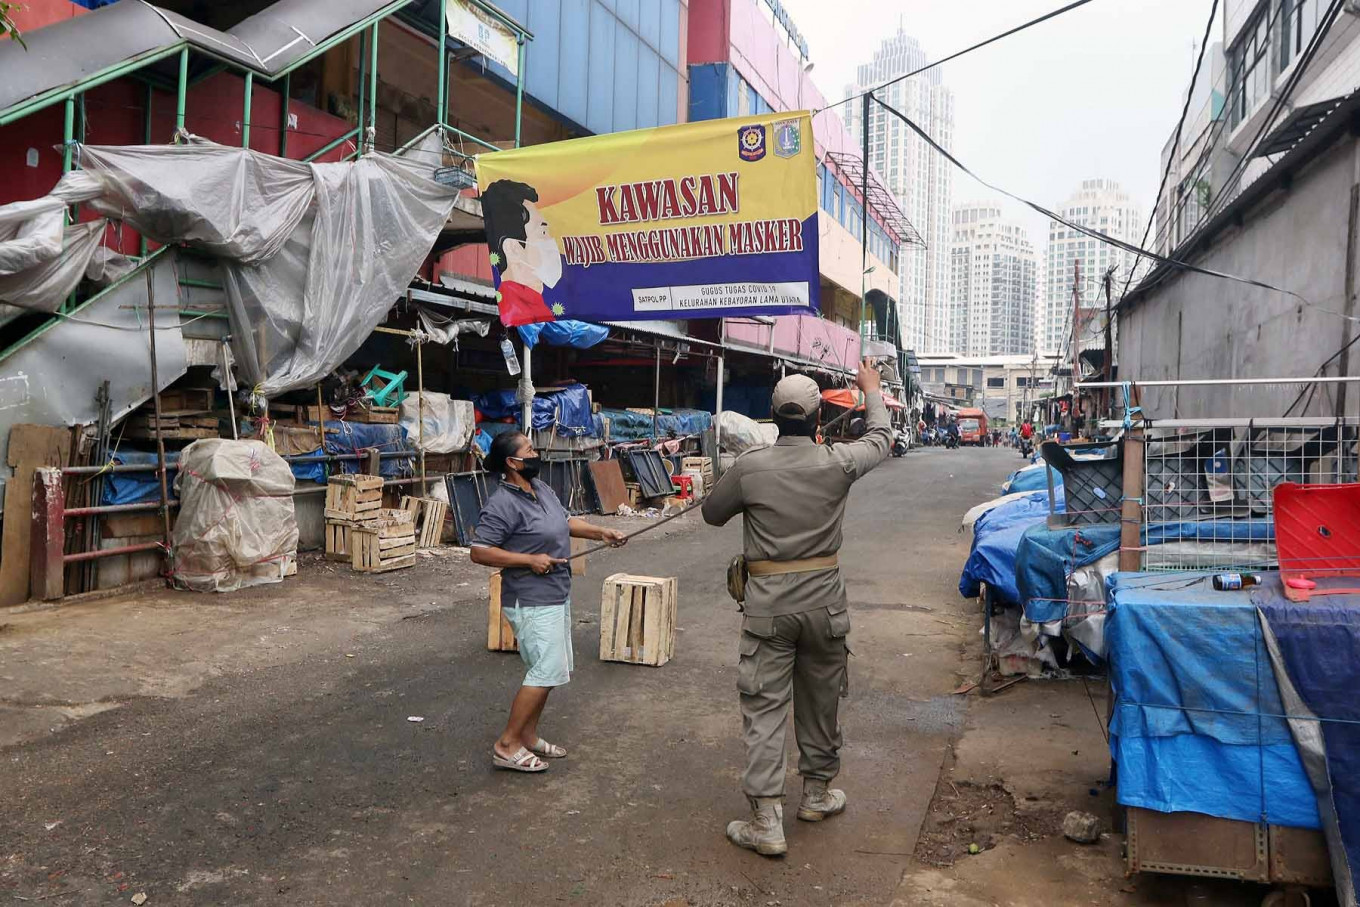 A Public Order Agency (Satpol PP) officer puts up a banner reminding residents that wearing masks in public is mandatory, at Kebayoran Lama Market in South Jakarta on June 19. The market was closed from June 18 to 20 after vendors tested positive for COVID-19. JP/Dhoni Setiawan